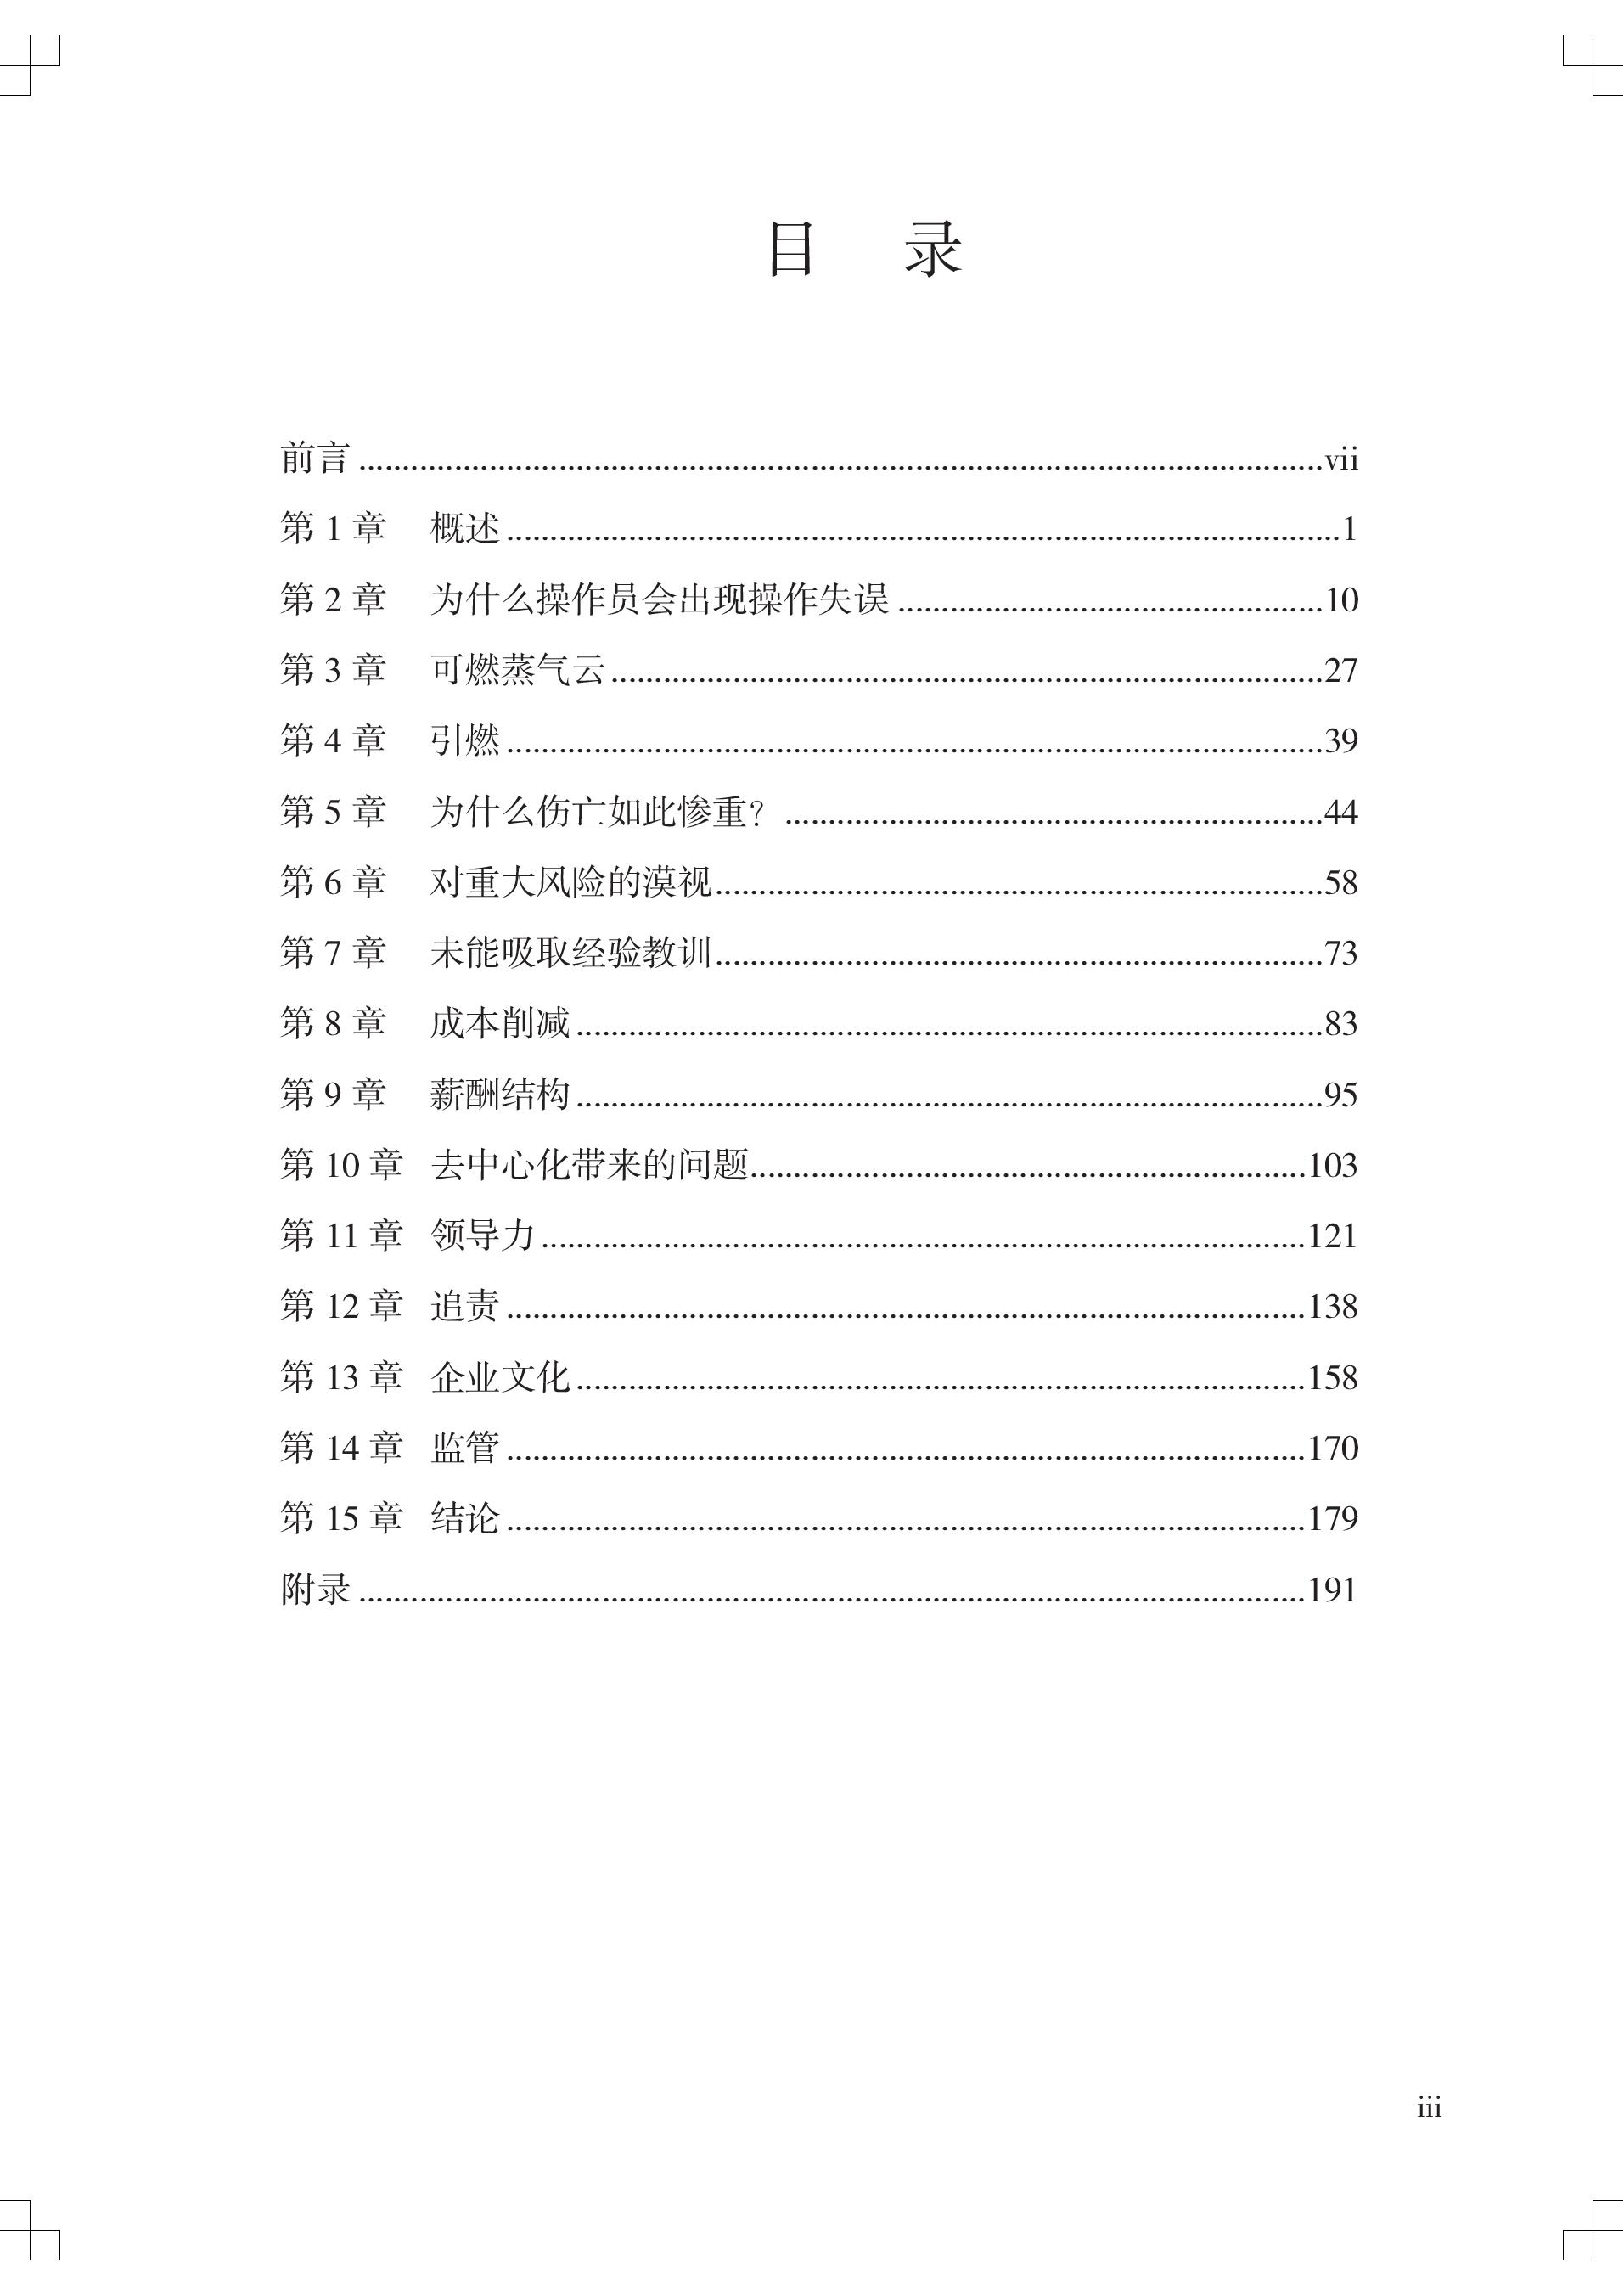 Contents Page Failure to Learn - Simplified Chinese